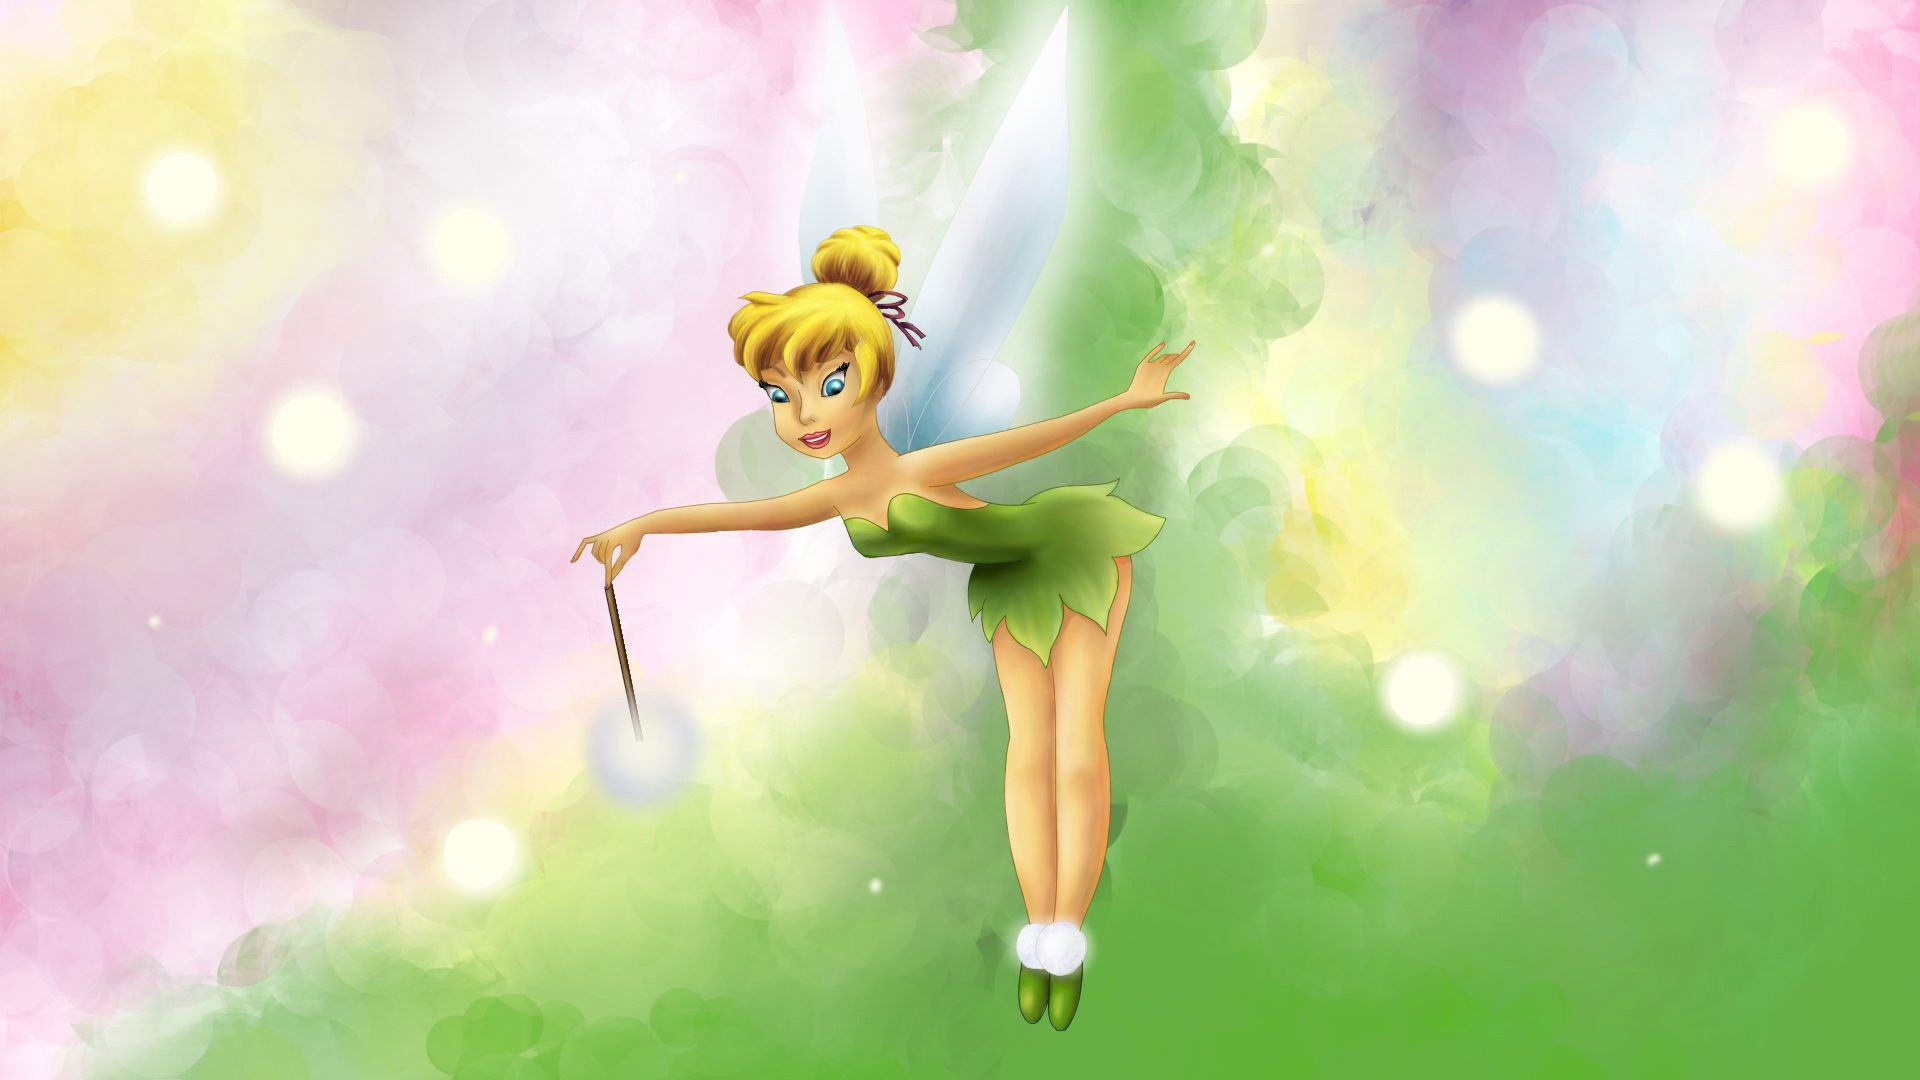 1920x1080 Fairy Rescue Fly Hd Wallpaper for Desktop and Tinker Bell px